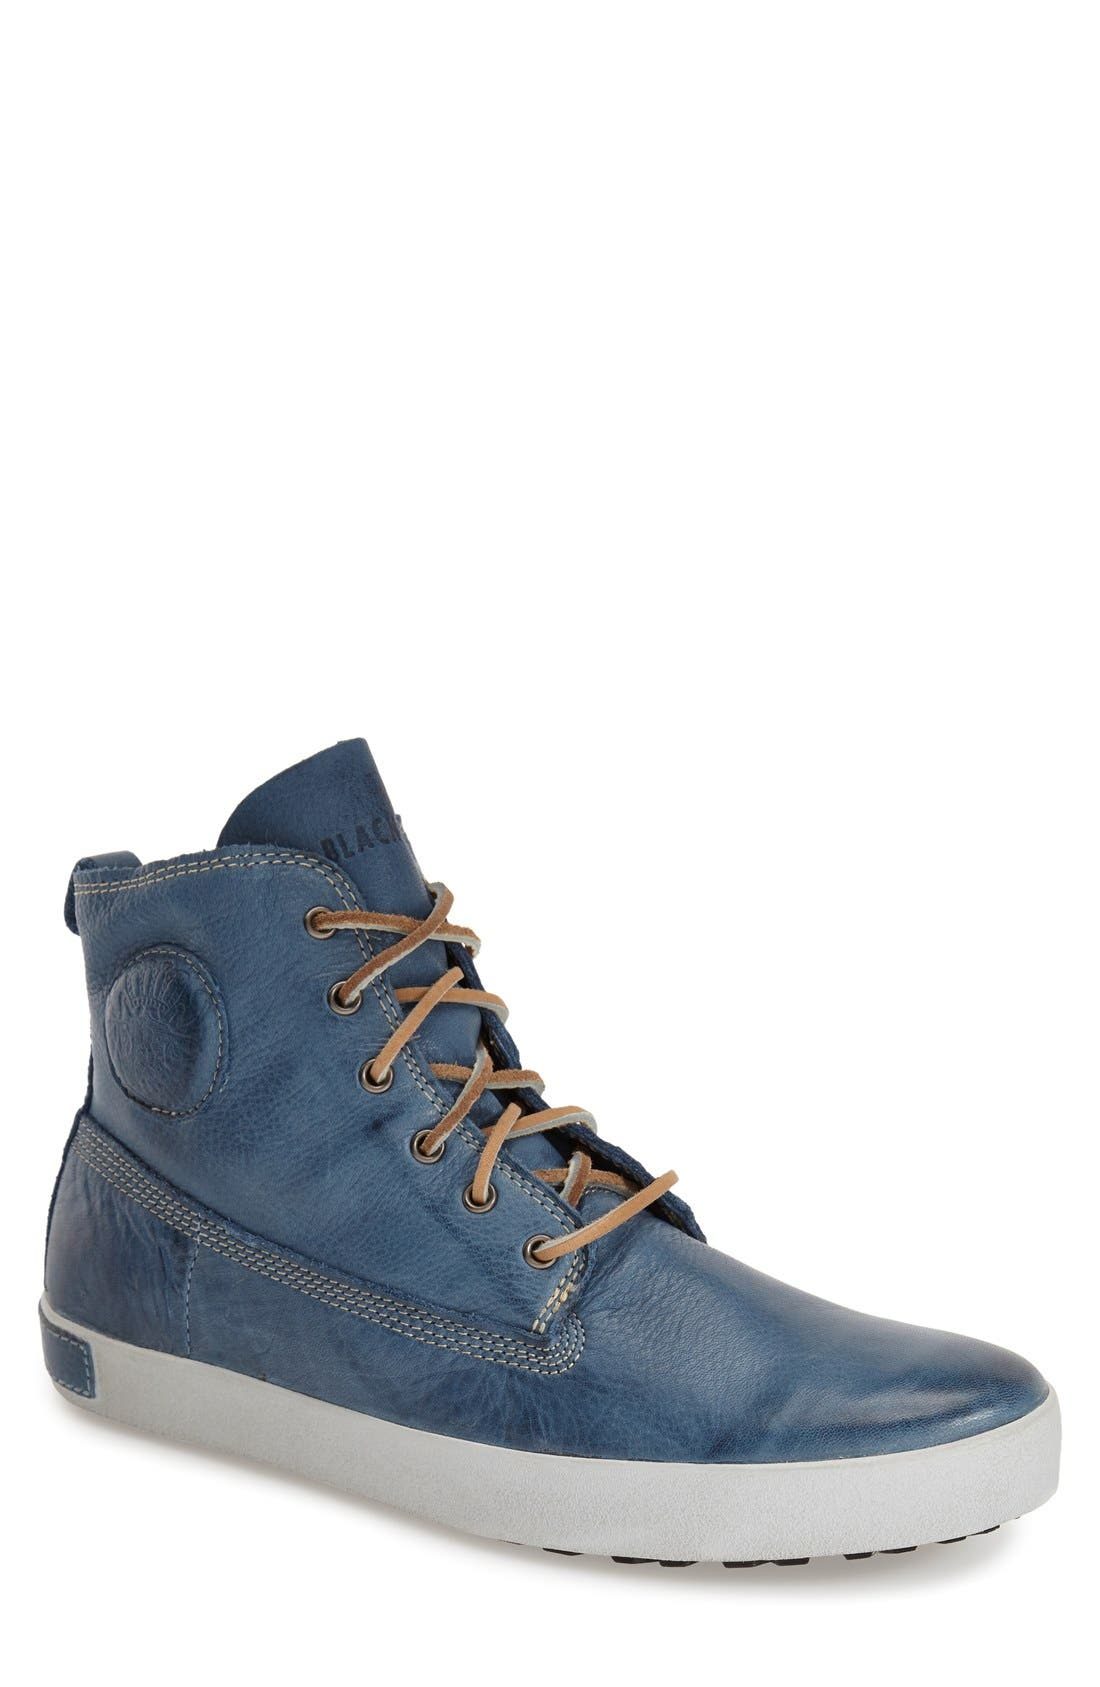 'JM04' Sneaker,                         Main,                         color, Light Indigo Leather